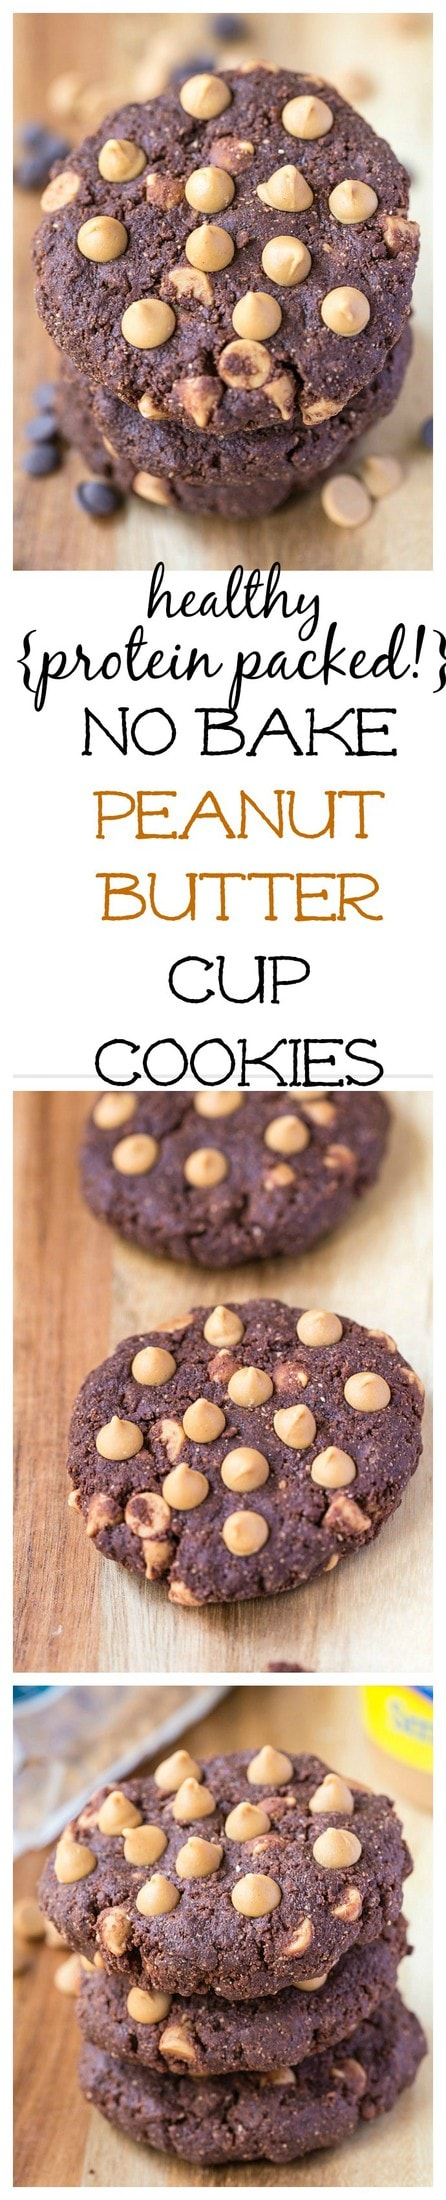 Healthy No Bake Peanut Butter Cup Cookies- Soft, chewy and ready in just TEN minutes, these peanut butter cup cookies taste JUST like Reese's but are SO healthy for you! Vegan, gluten free, dairy free and VERY low in sugar! @thebigmansworld - thebigmansworld.com